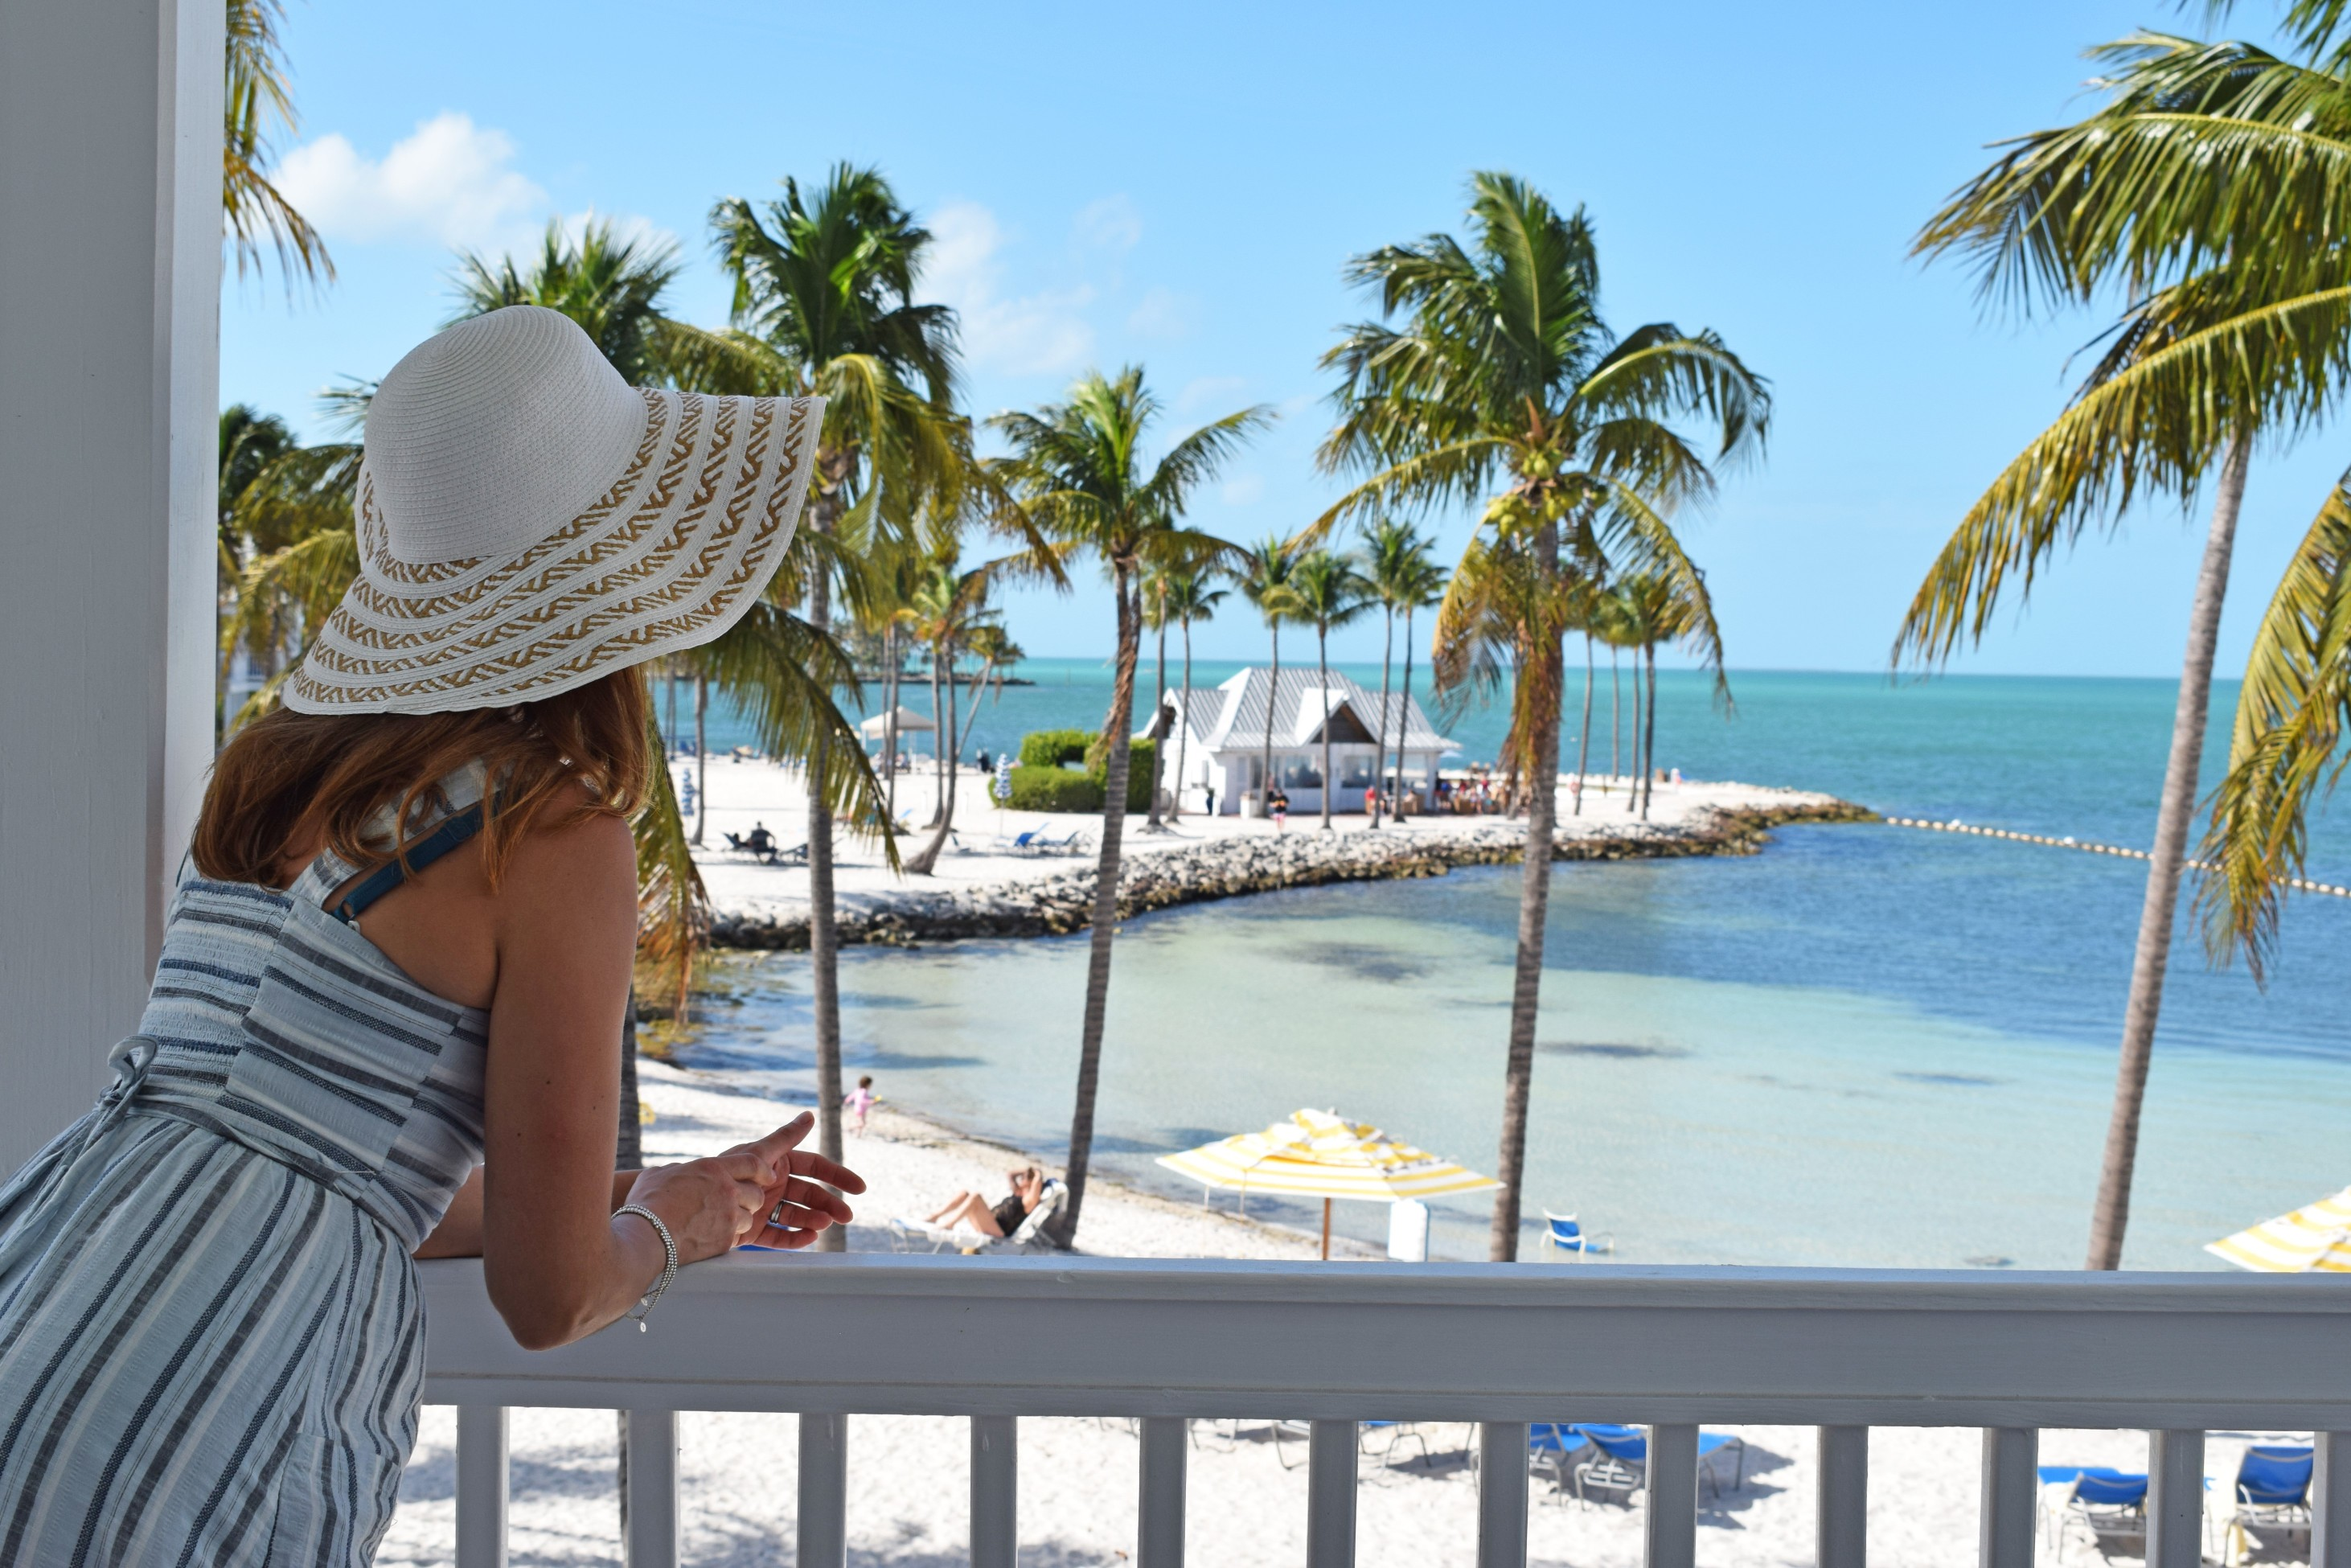 Woman on balcony overlooking private beach in the Florida Keys